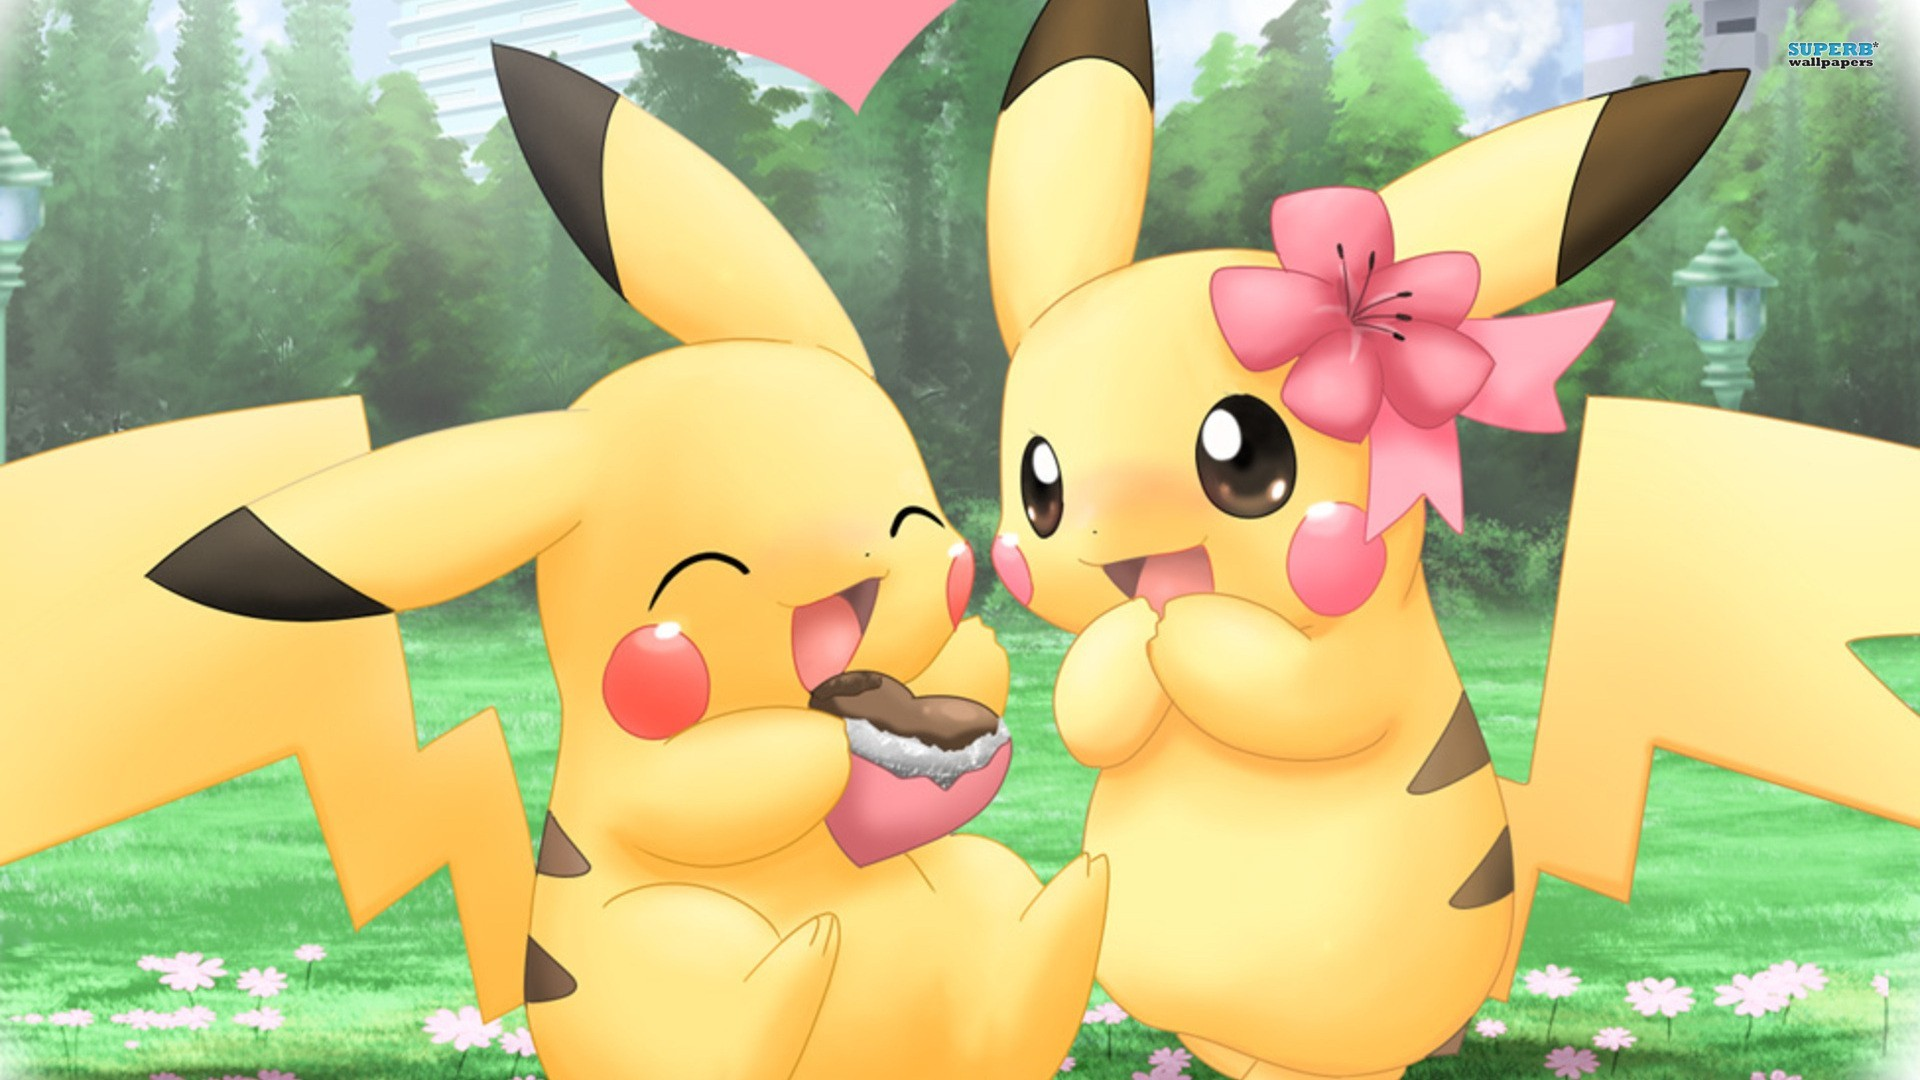 1920x1080 Pikachu Pokemon Cute Couples HD Wallpaper of Cartoon - hdwallpaper2013 .